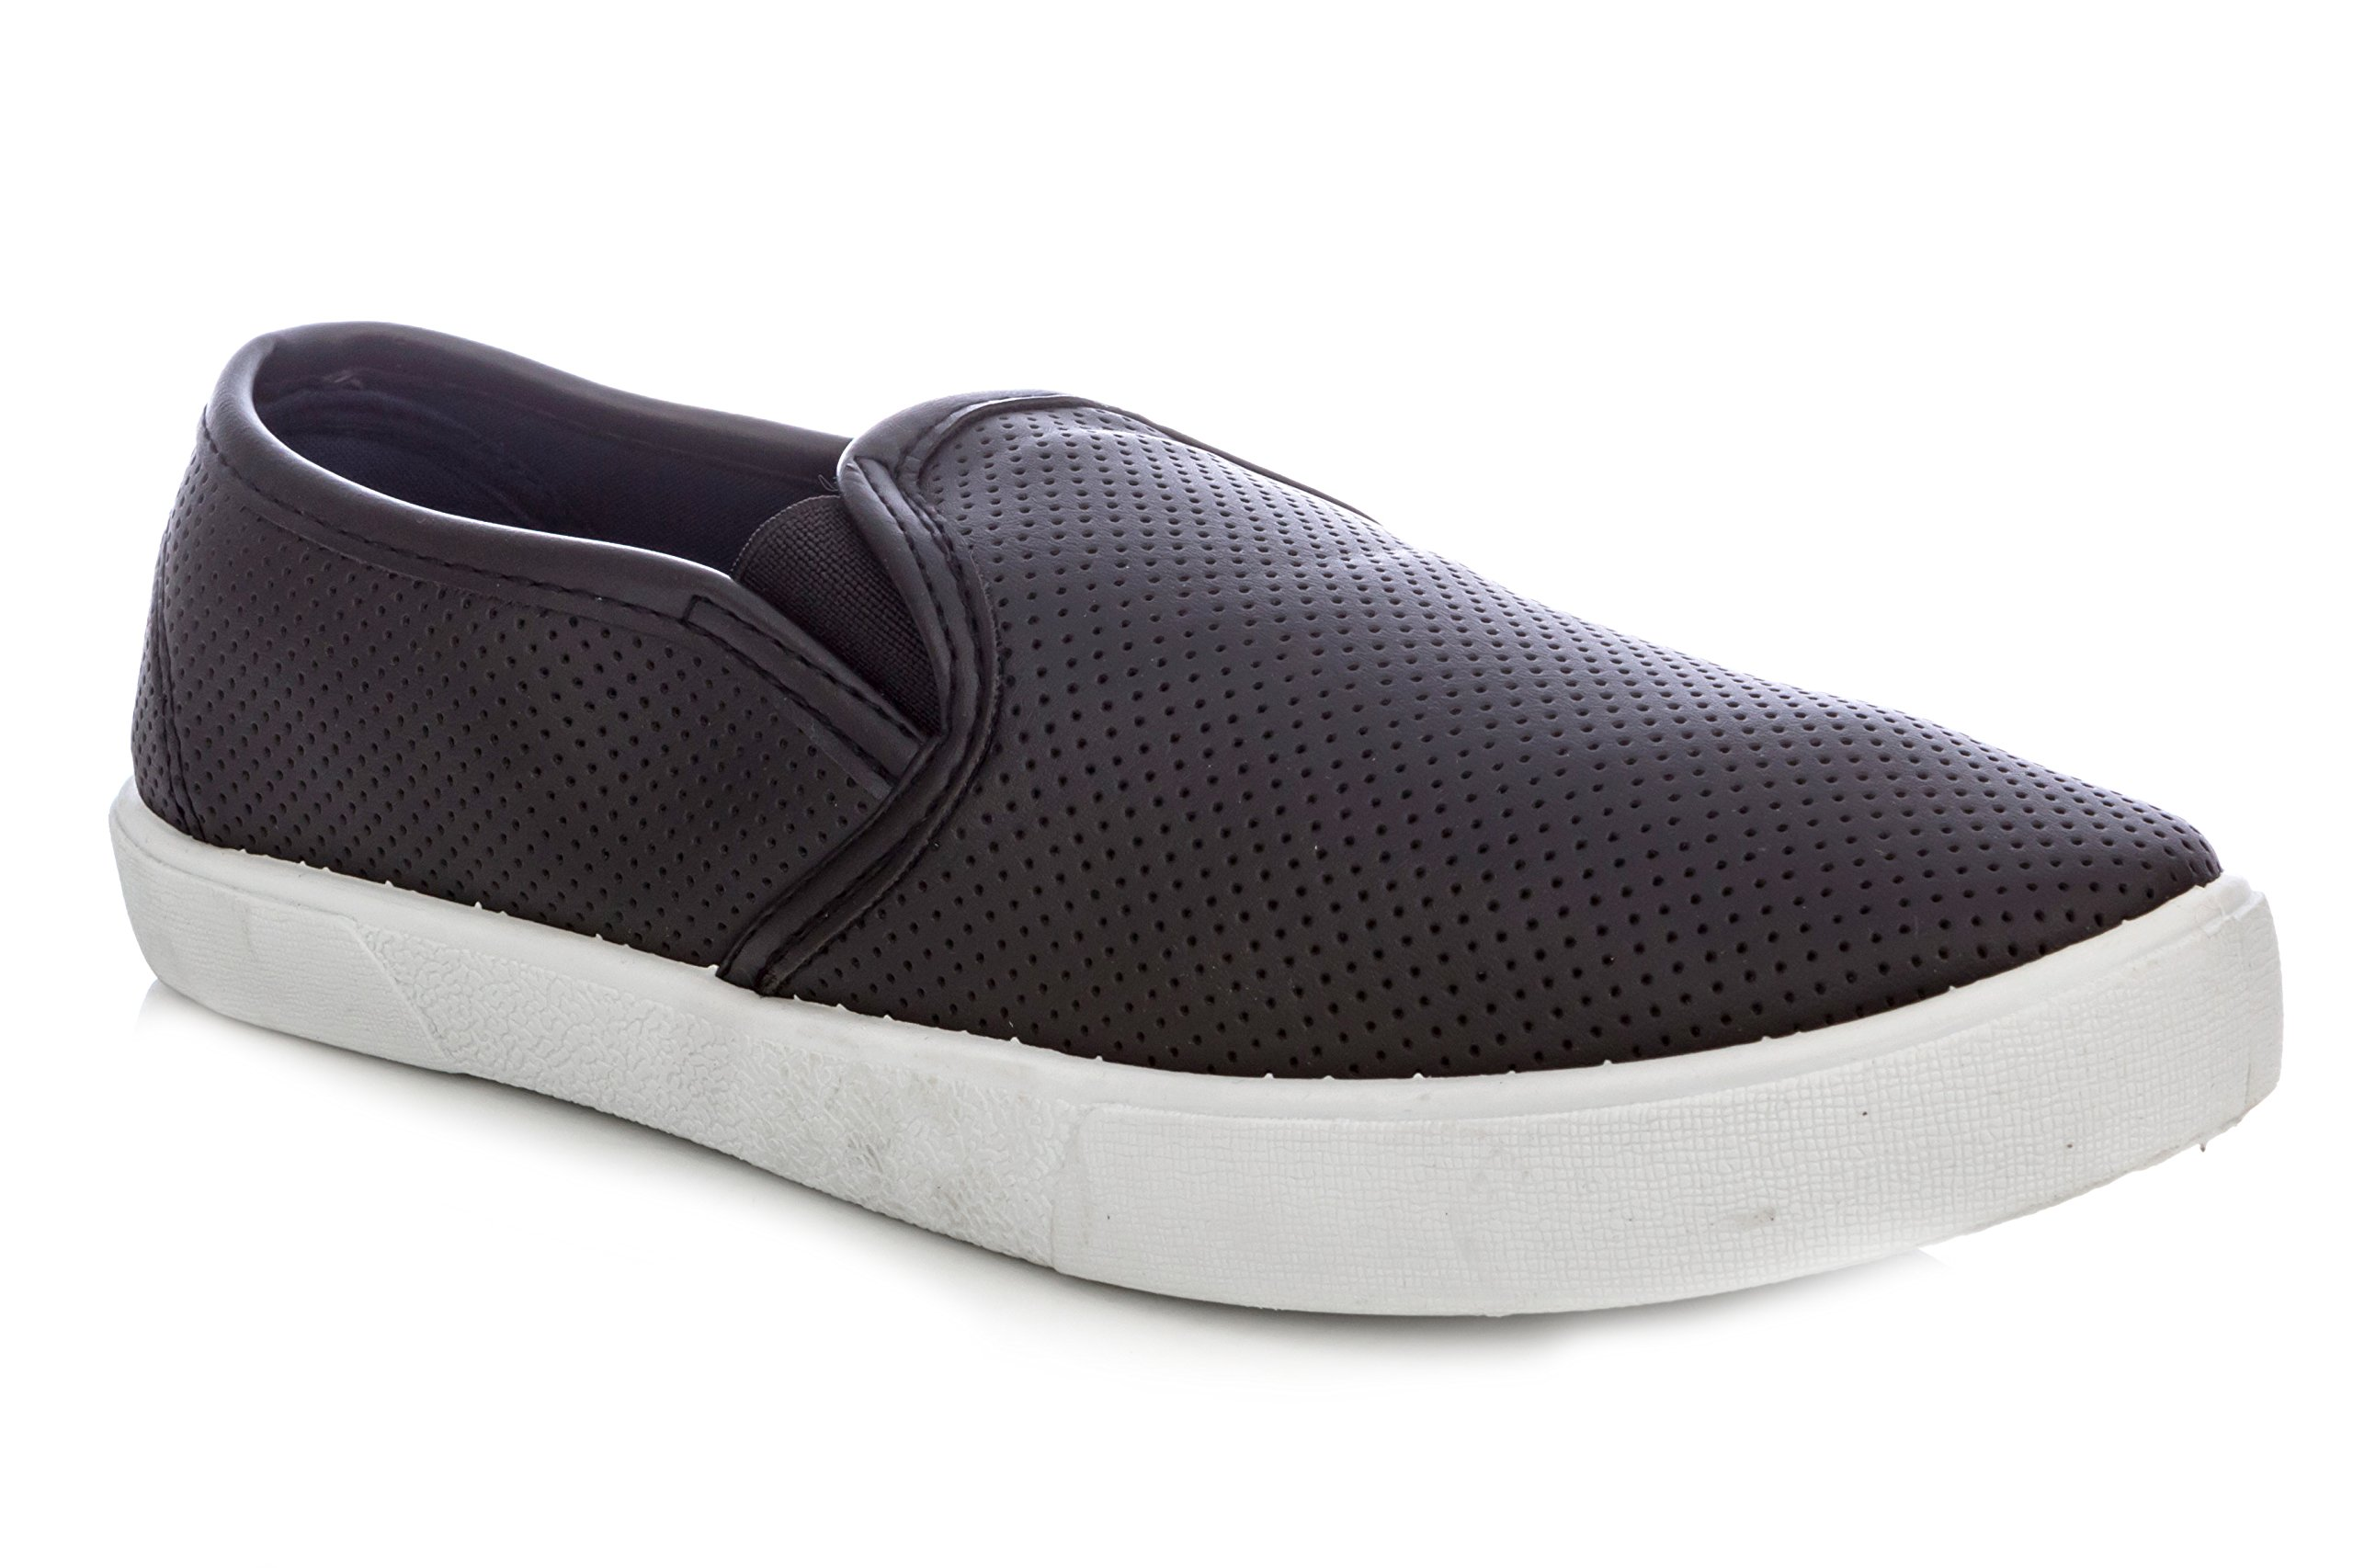 Charles Albert Women's Comfortable Perforated Slip-On Fashion Sneaker in Black Size: 8